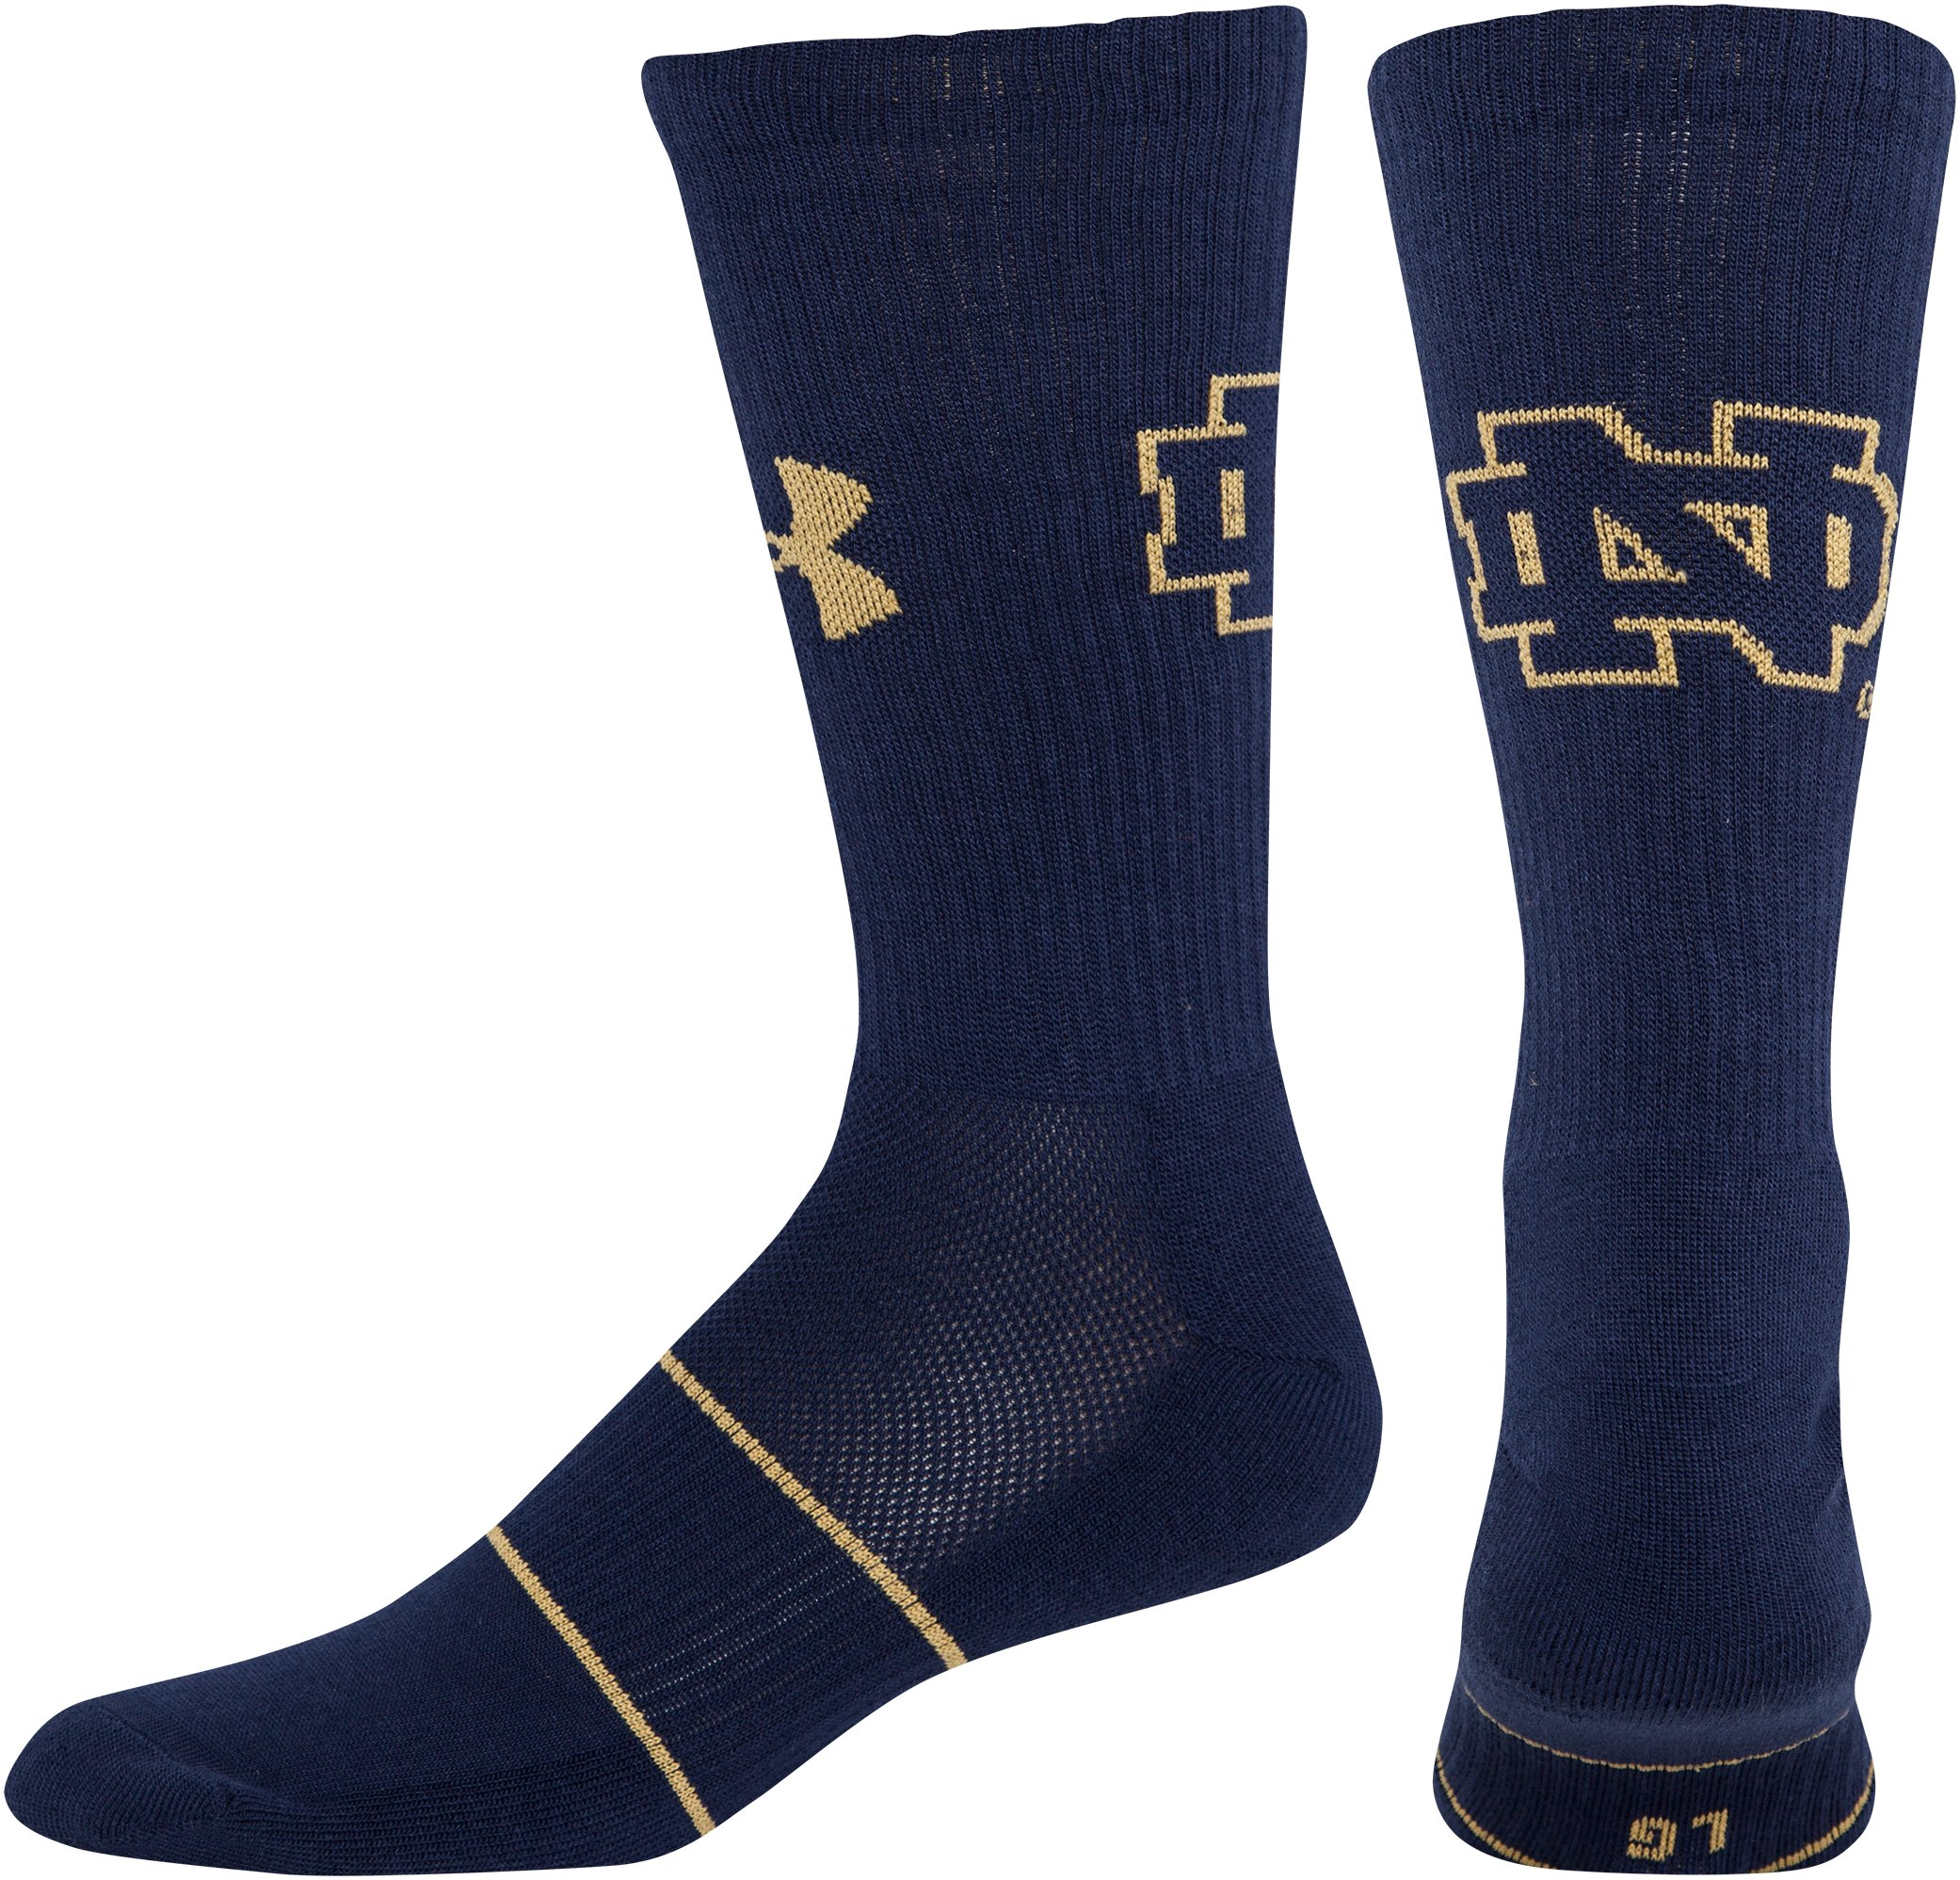 Kids' Notre Dame UA Crew Socks, Midnight Navy, zoomed image